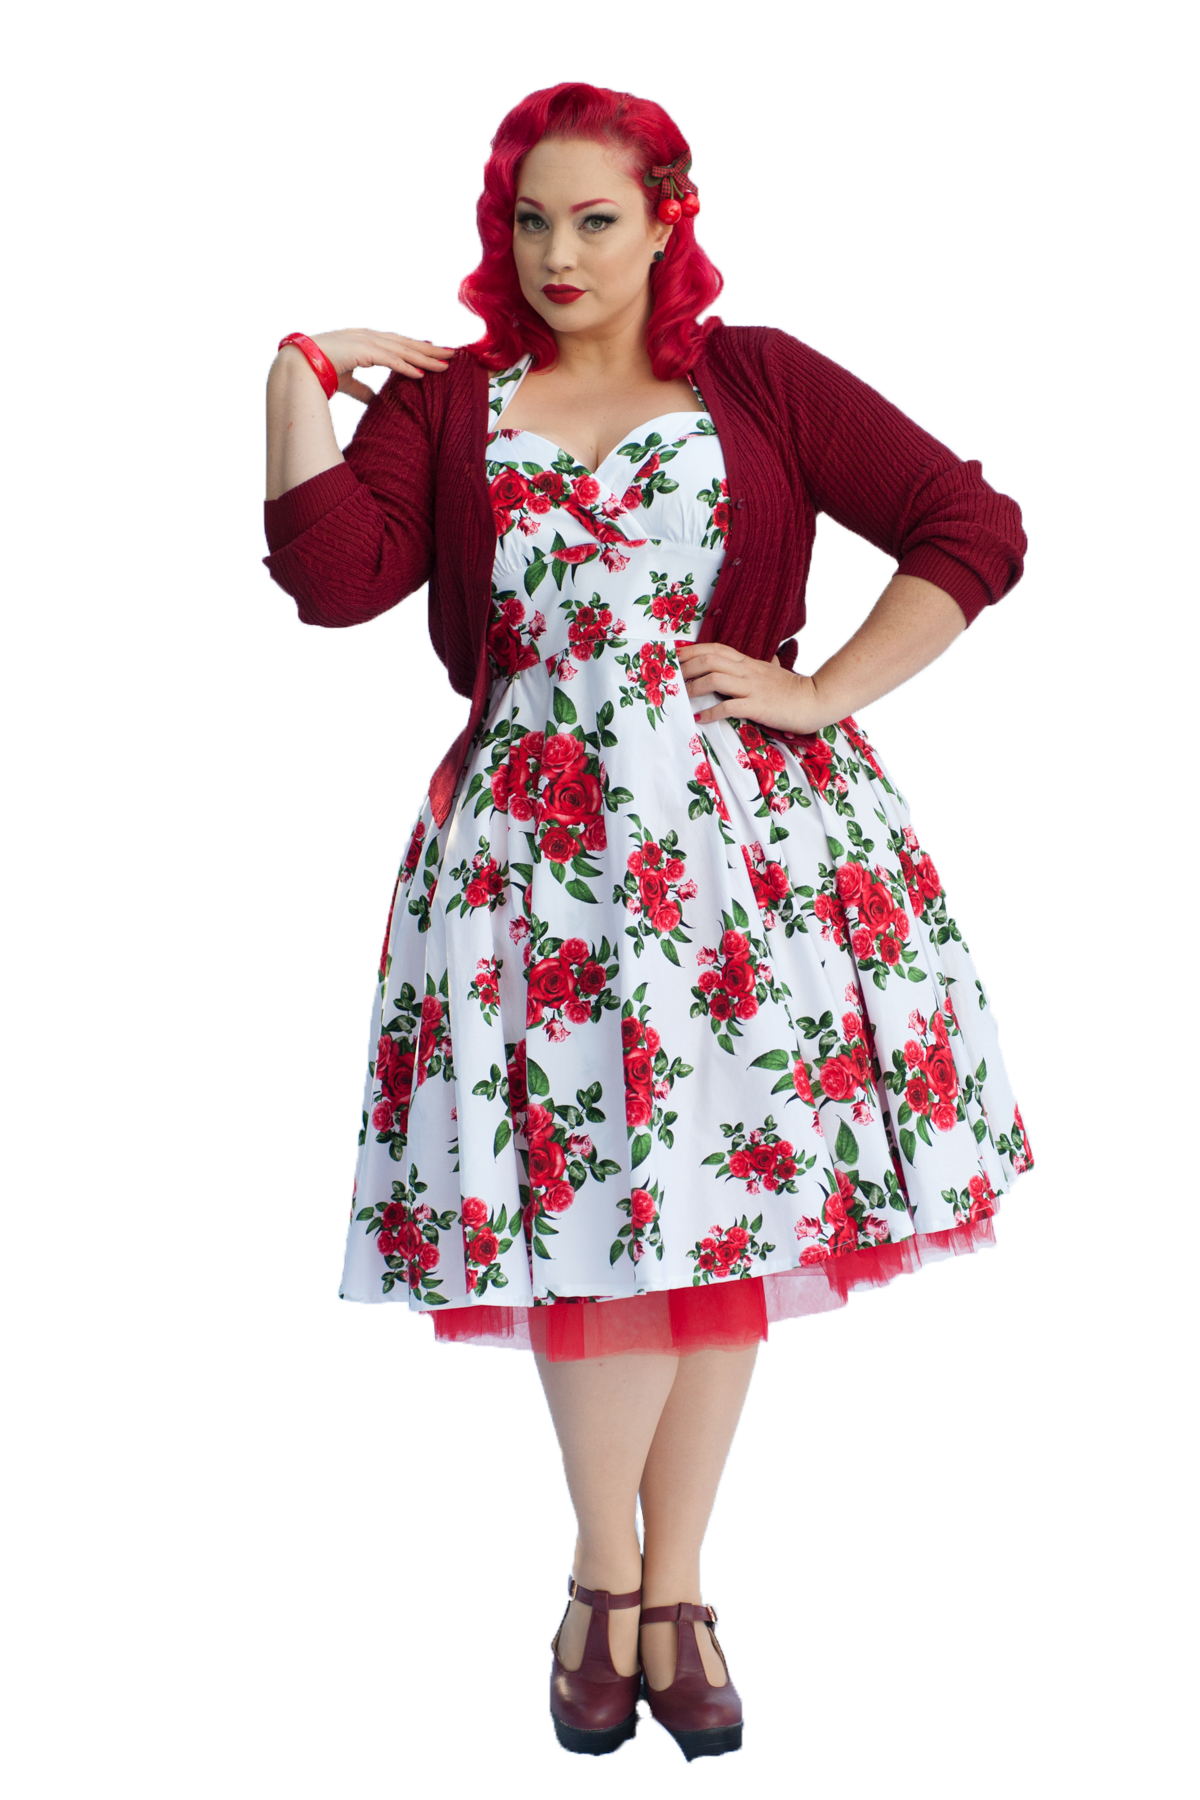 0ed45b6becb3 Pinup Cannes 50s Dress | Rose | White | Hell Bunny | Nostalgia Now